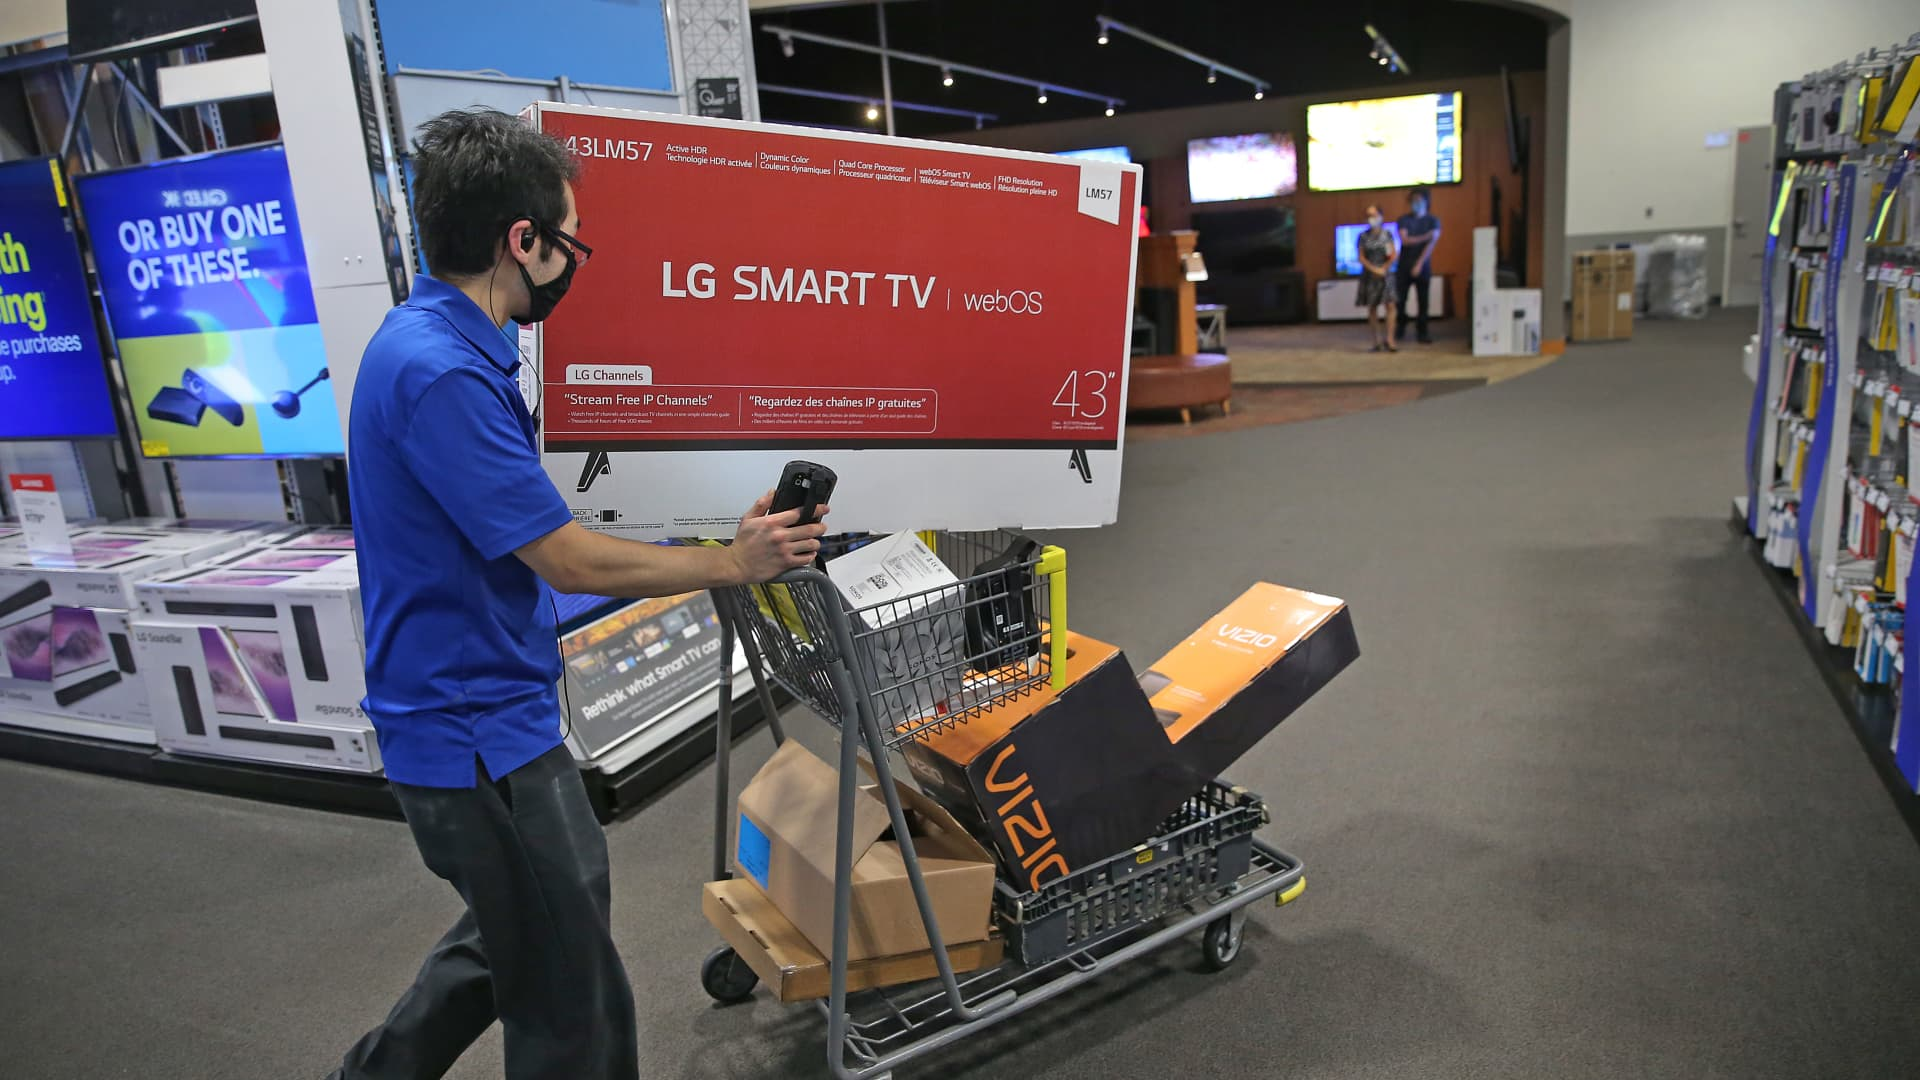 A Best Buy employee uses a cart to do shopping for an online customer at South Bay Center in Boston on Nov. 10, 2020. Retail trends are changing during the Covid-19 pandemic, and Best Buy has begun offering their holiday Black Friday sales and deals earlier in the month to thin out crowds.